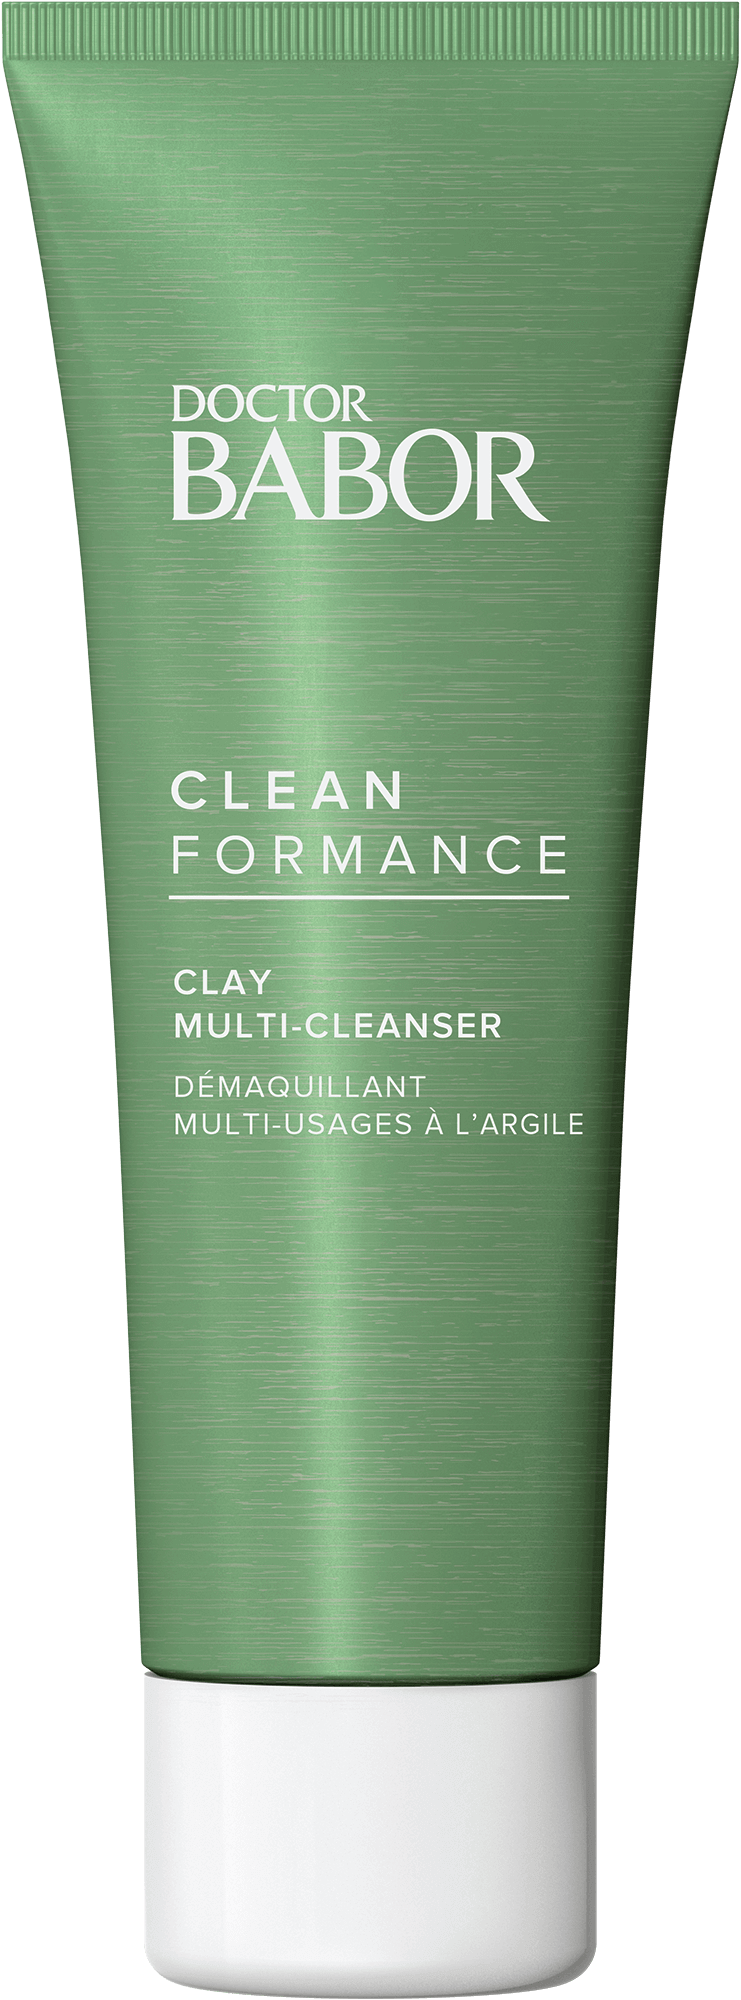 DOCTOR BABOR TECH CELLULAR CLEANFORMANCE Clay Multi-Cleanser